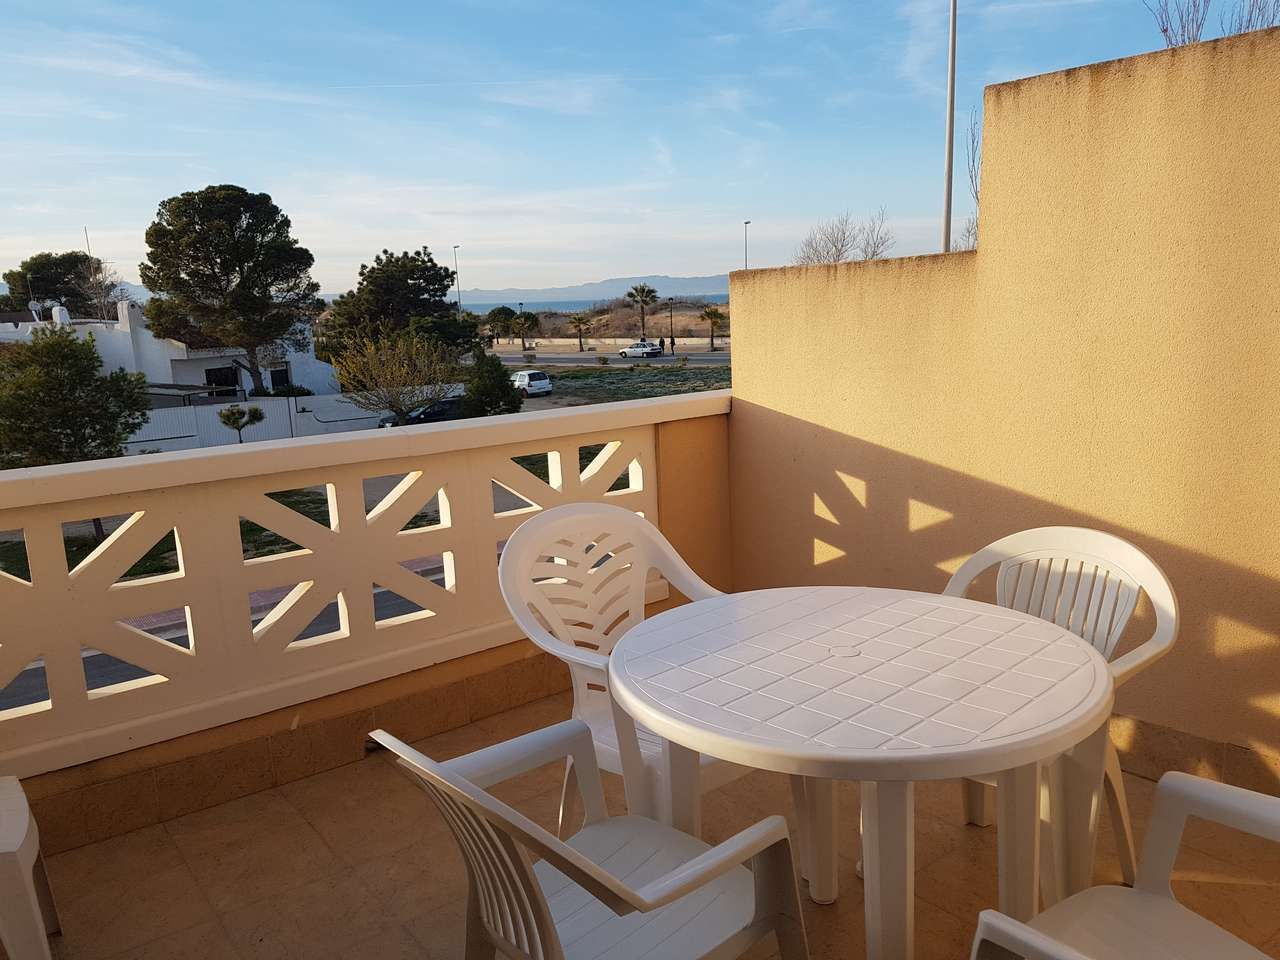 Appartement La Marquesa. Vermietung von Appartments in Riumar, Deltebre, Ebrodelta - 4